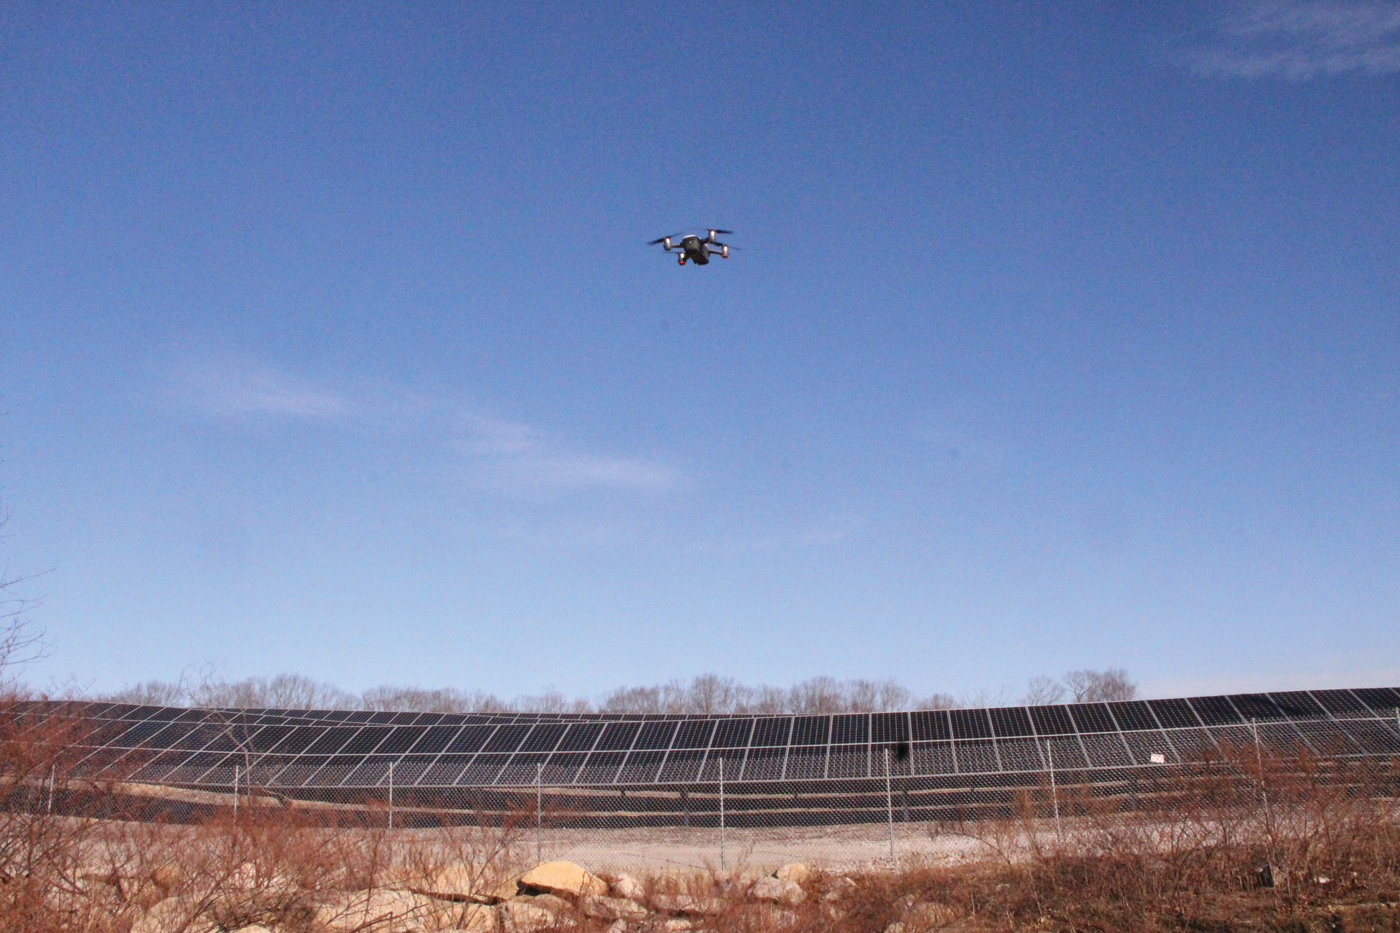 LOOKING AT THE BIG PICTURE: A drone flies over Southern Sky Renewable Energy RI's solar power installation off Lippitt Avenue in Cranston in this January file photo. Members of the public will have a chance to offer feedback on the city's review of its solar ordinance during a May 13 workshop at William Hall Library.